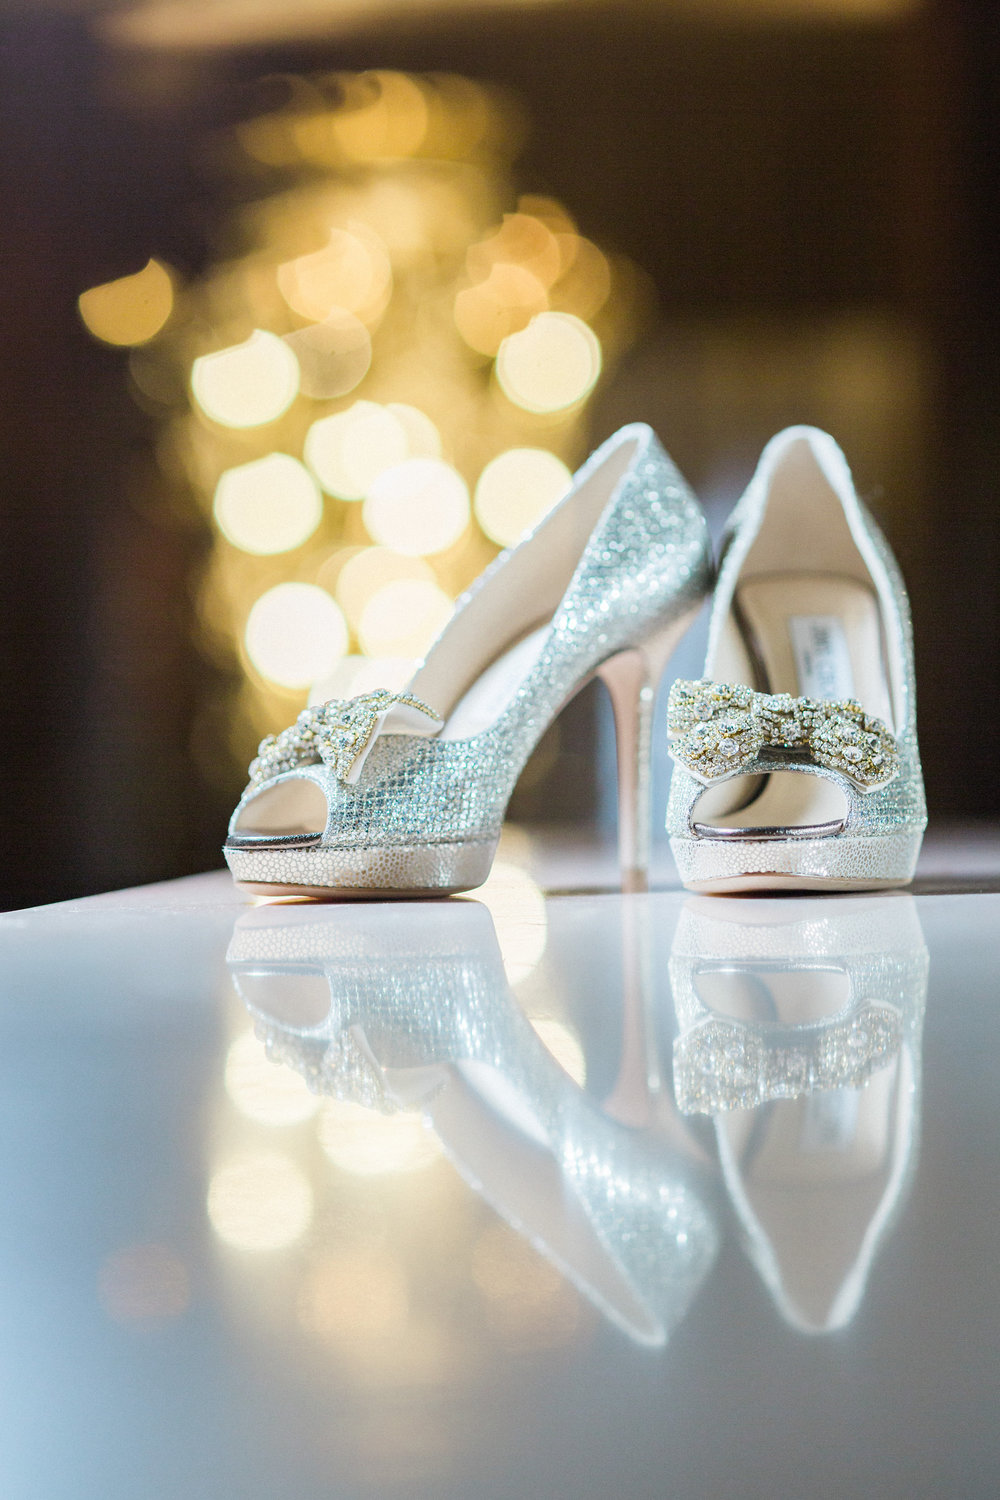 Bridal Shoe shot at The Hilton Netherland Plaza Hotel Cincinnati, OH